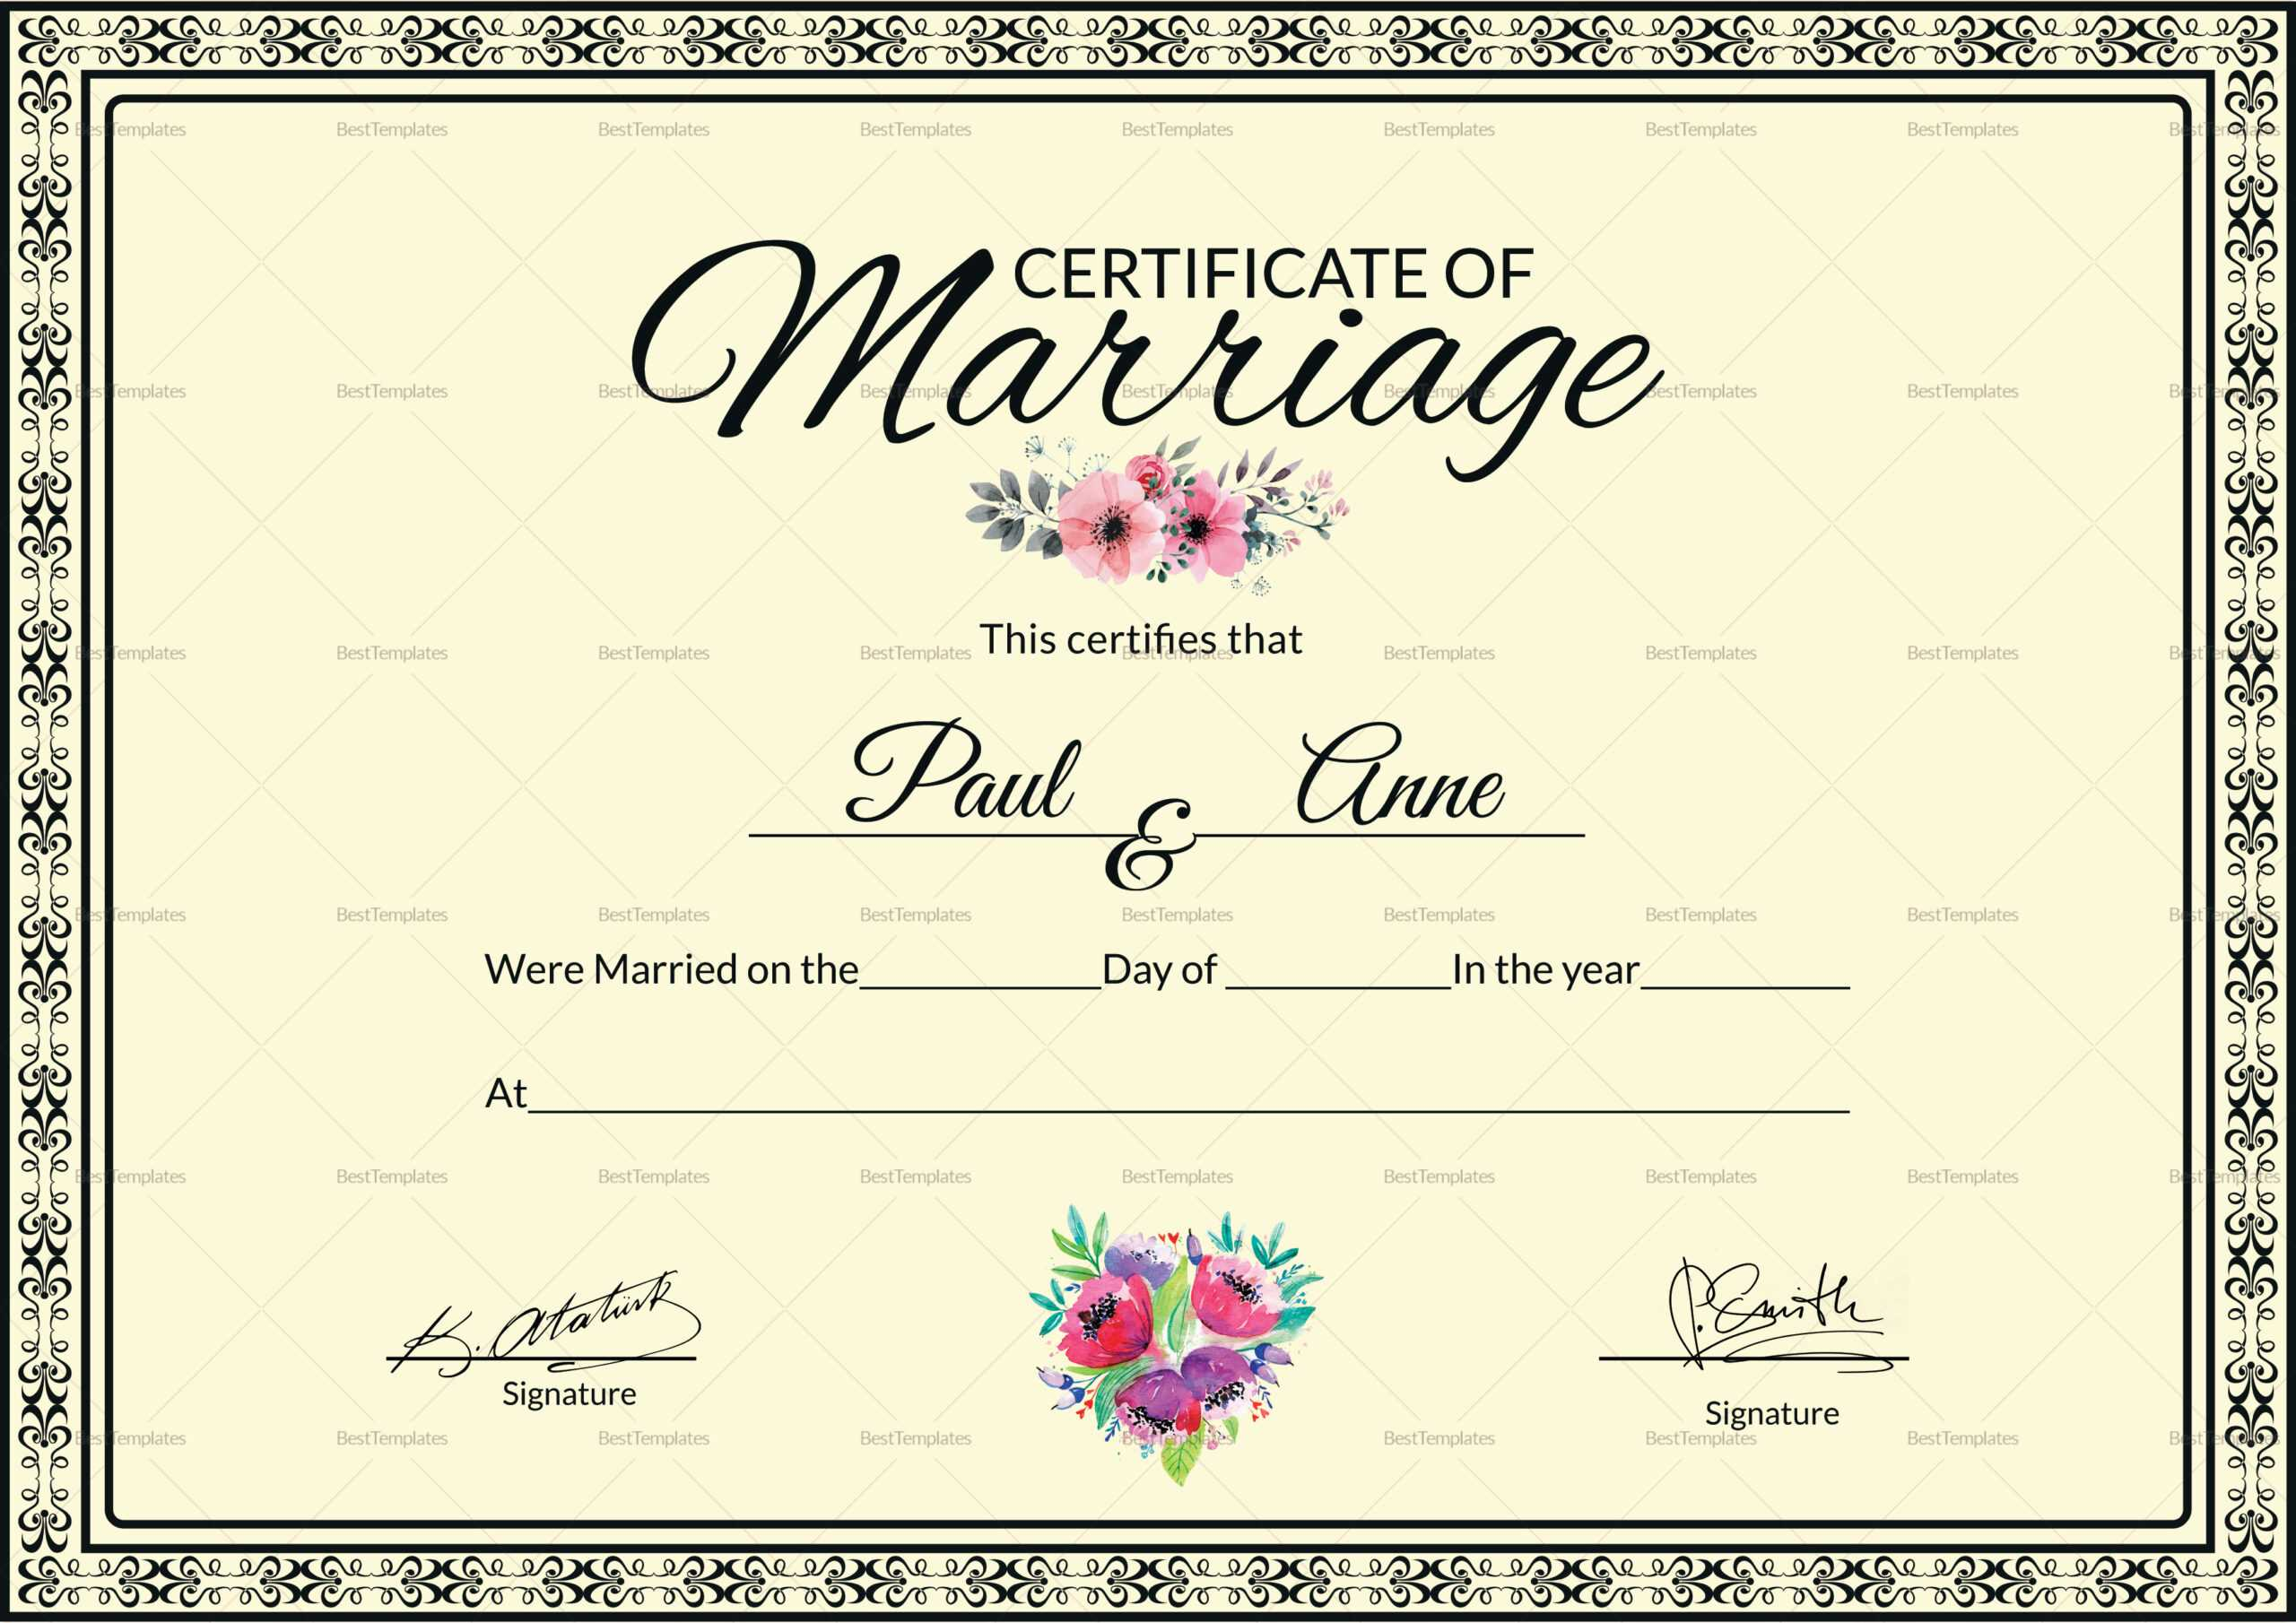 002 Template Ideas Certificate Of Marriage Beautiful Pertaining To Certificate Of Marriage Template